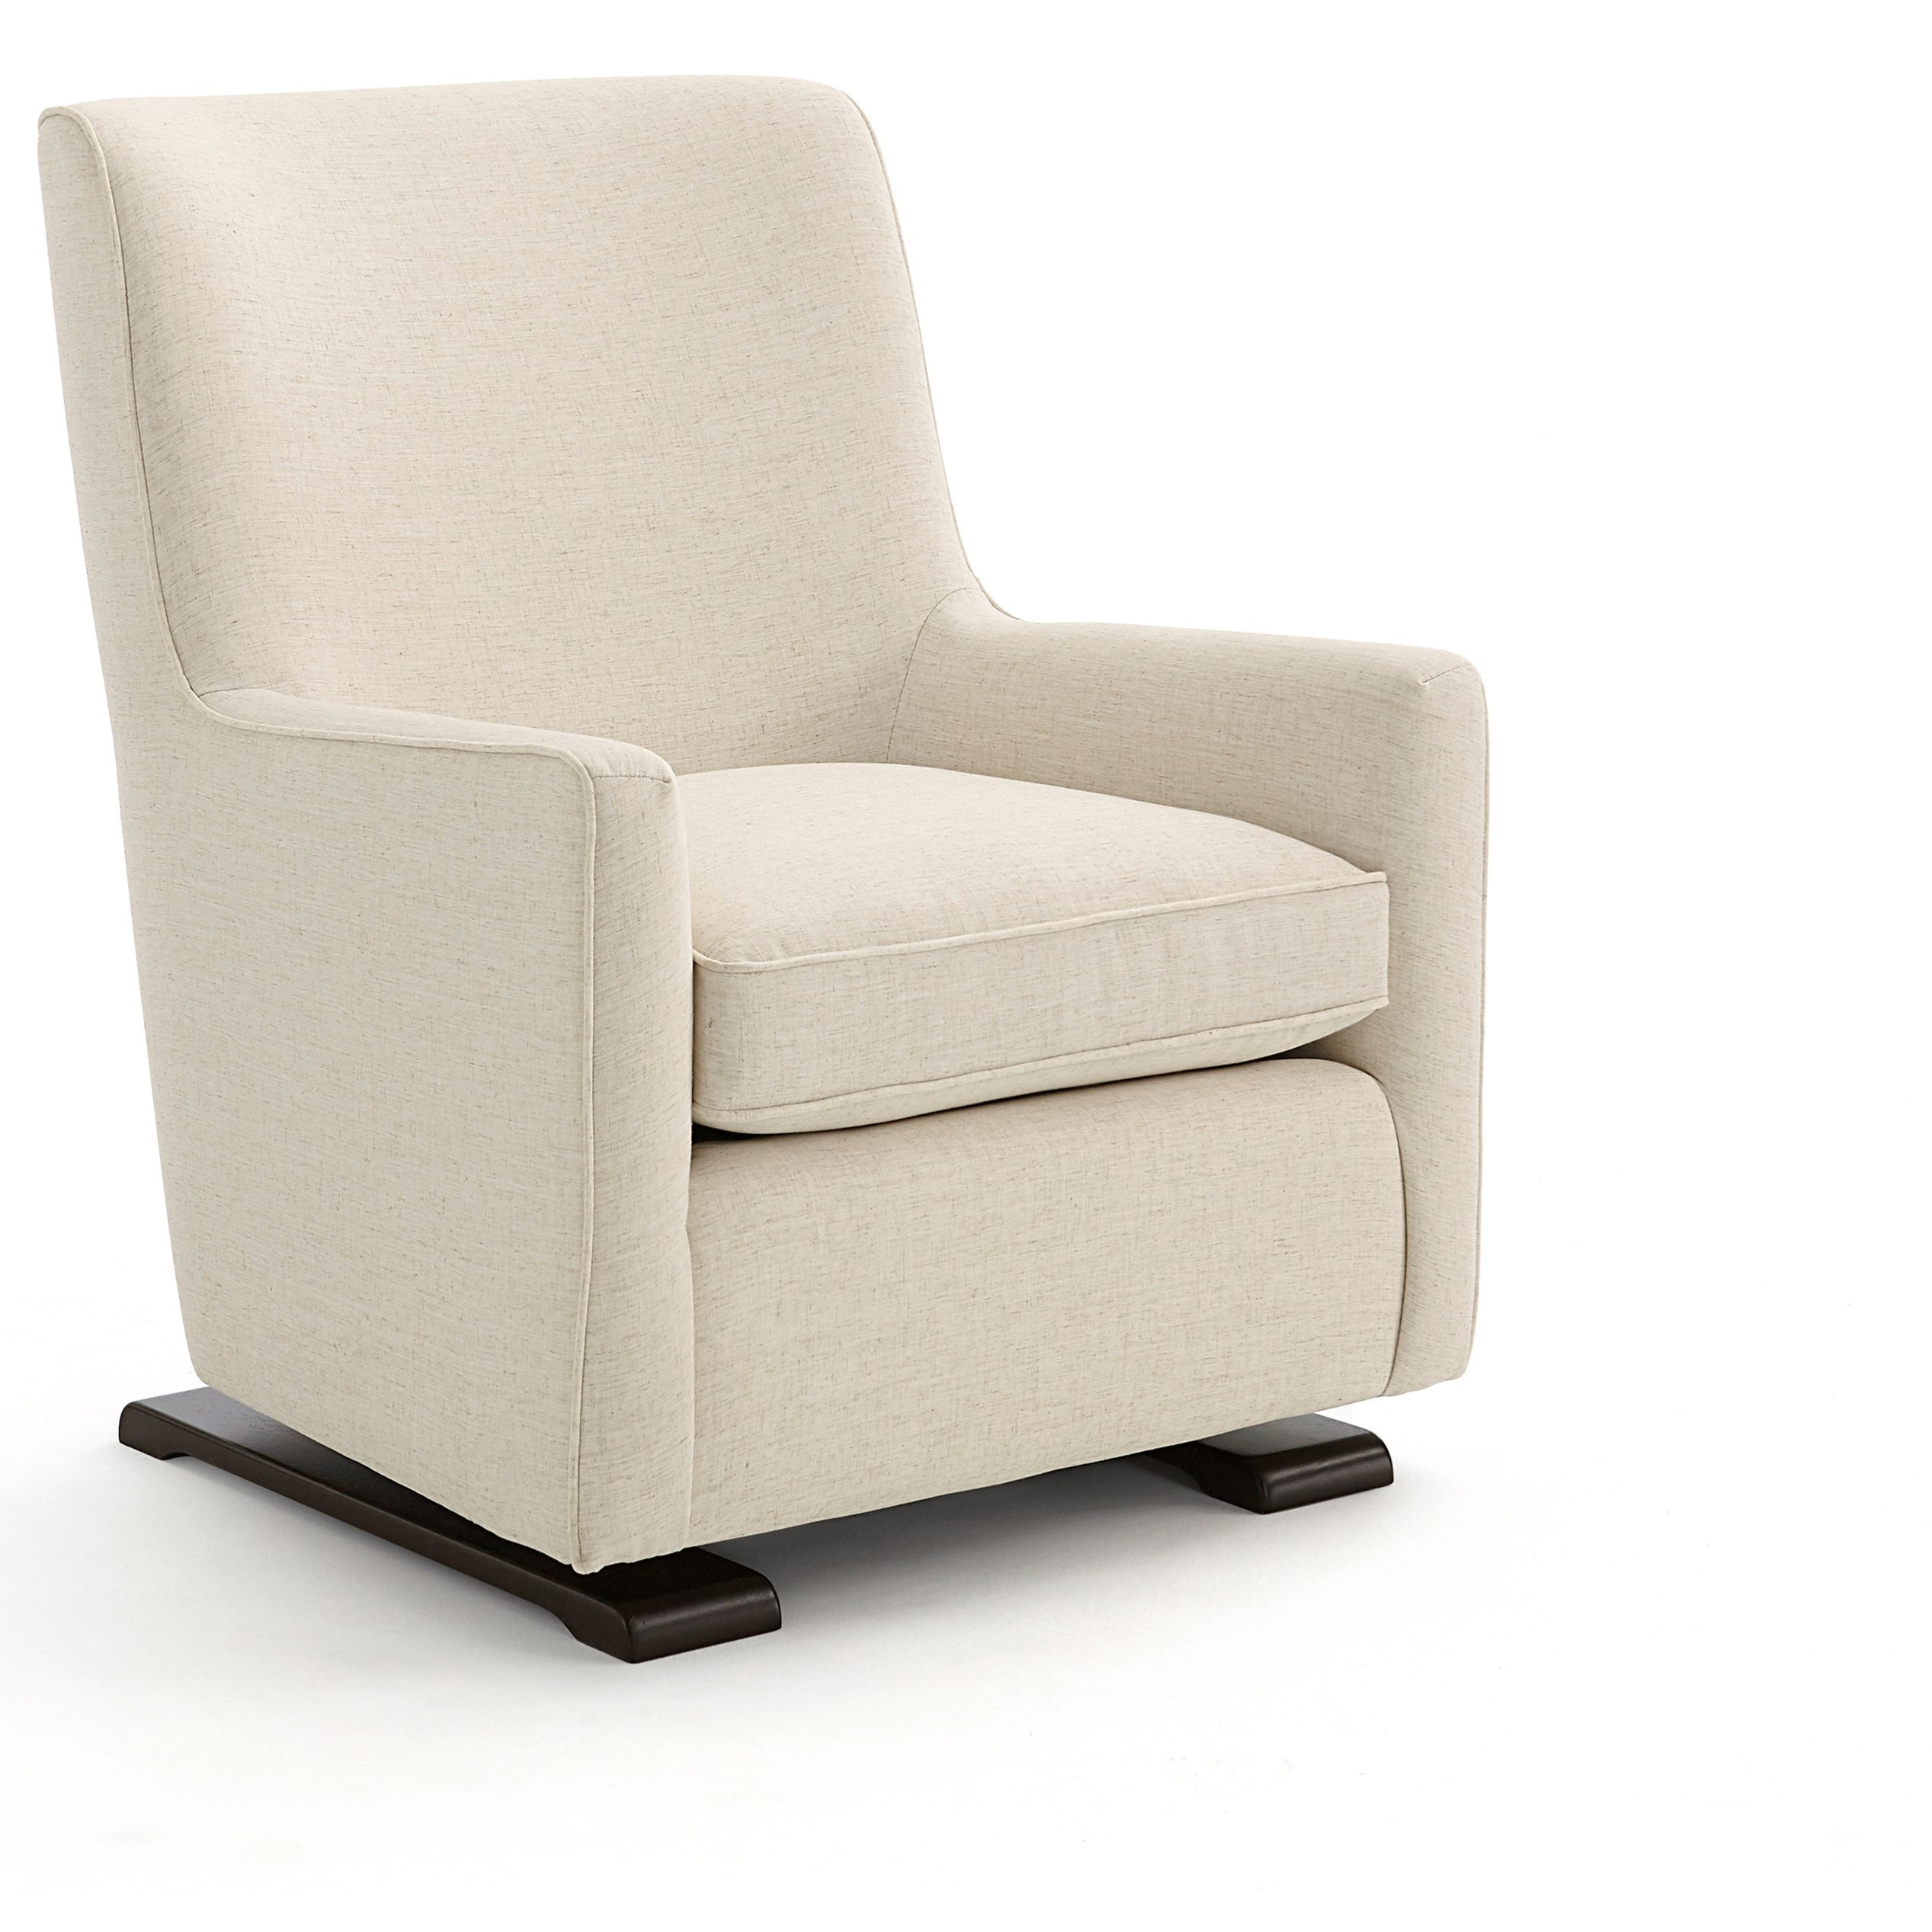 Coral Swivel Glider Chair